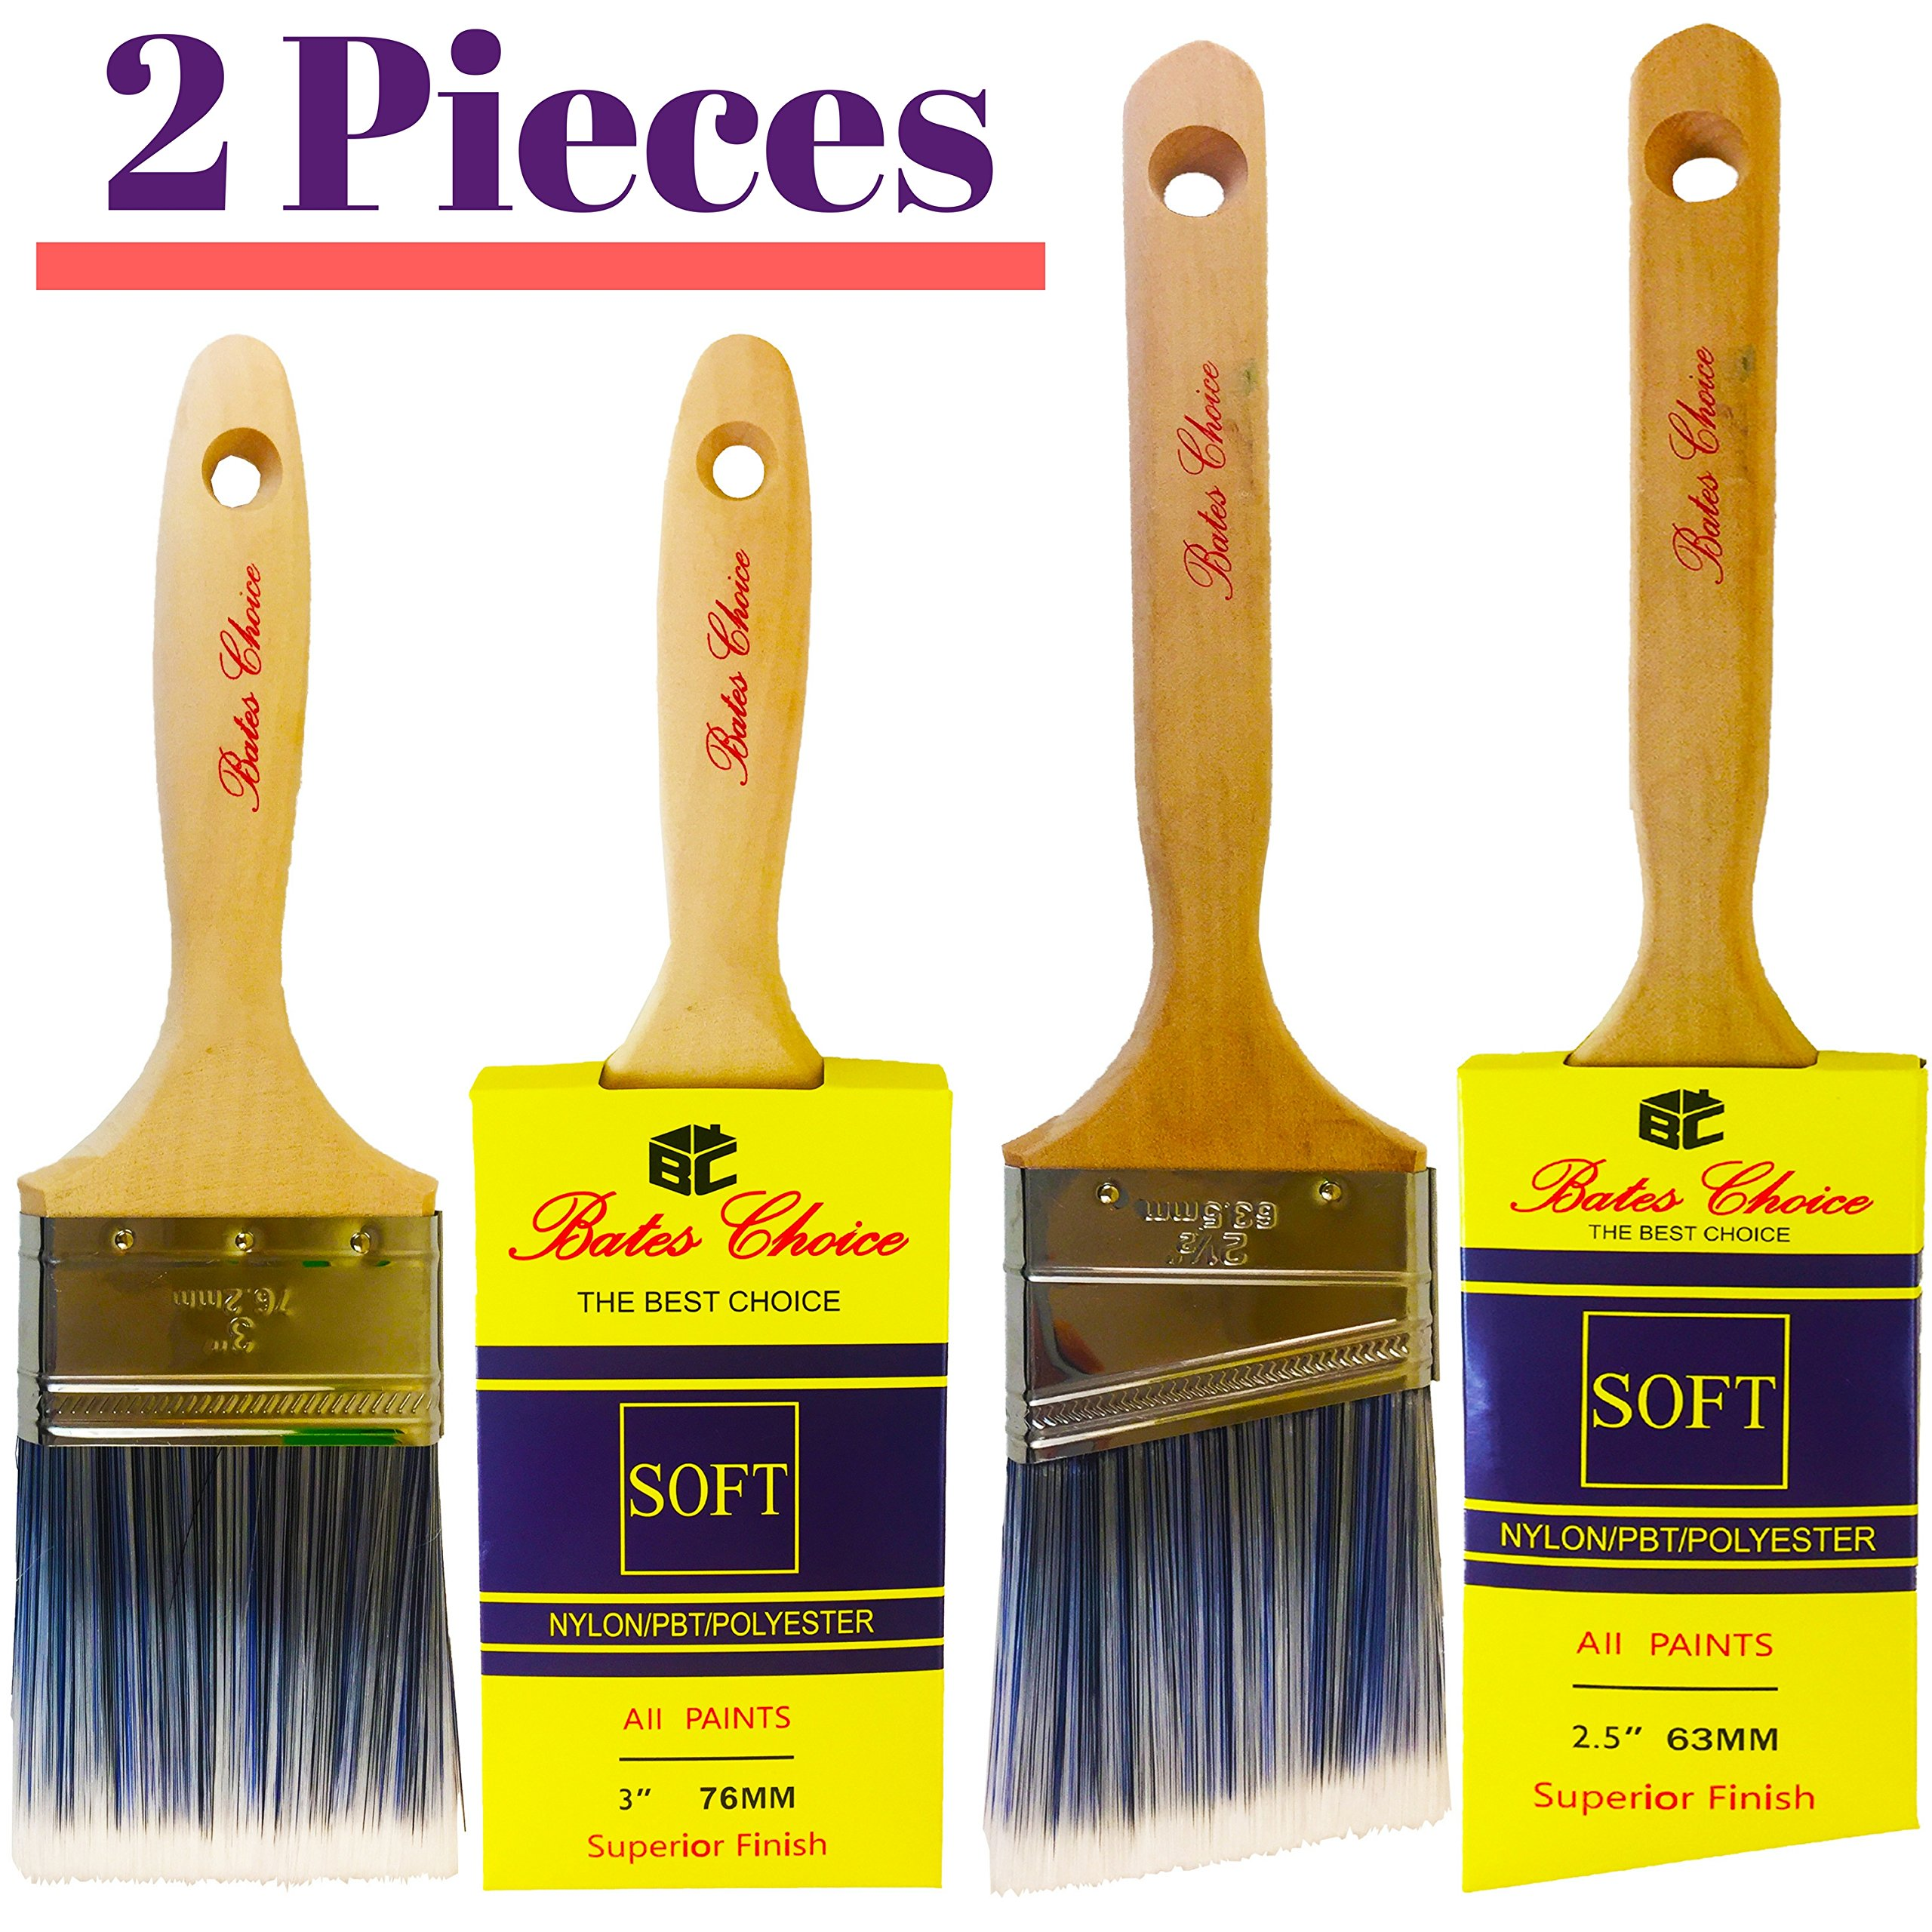 Bates - Paint Brushes, 2 Pieces (3-Inch and Angle 2.5-Inch), Trim Paint Brush, Premium Paintbrush, Paint Brushes for Walls, Angle Sash Paint Brush, Professional Wall Brush Set, Home Paint Brushes